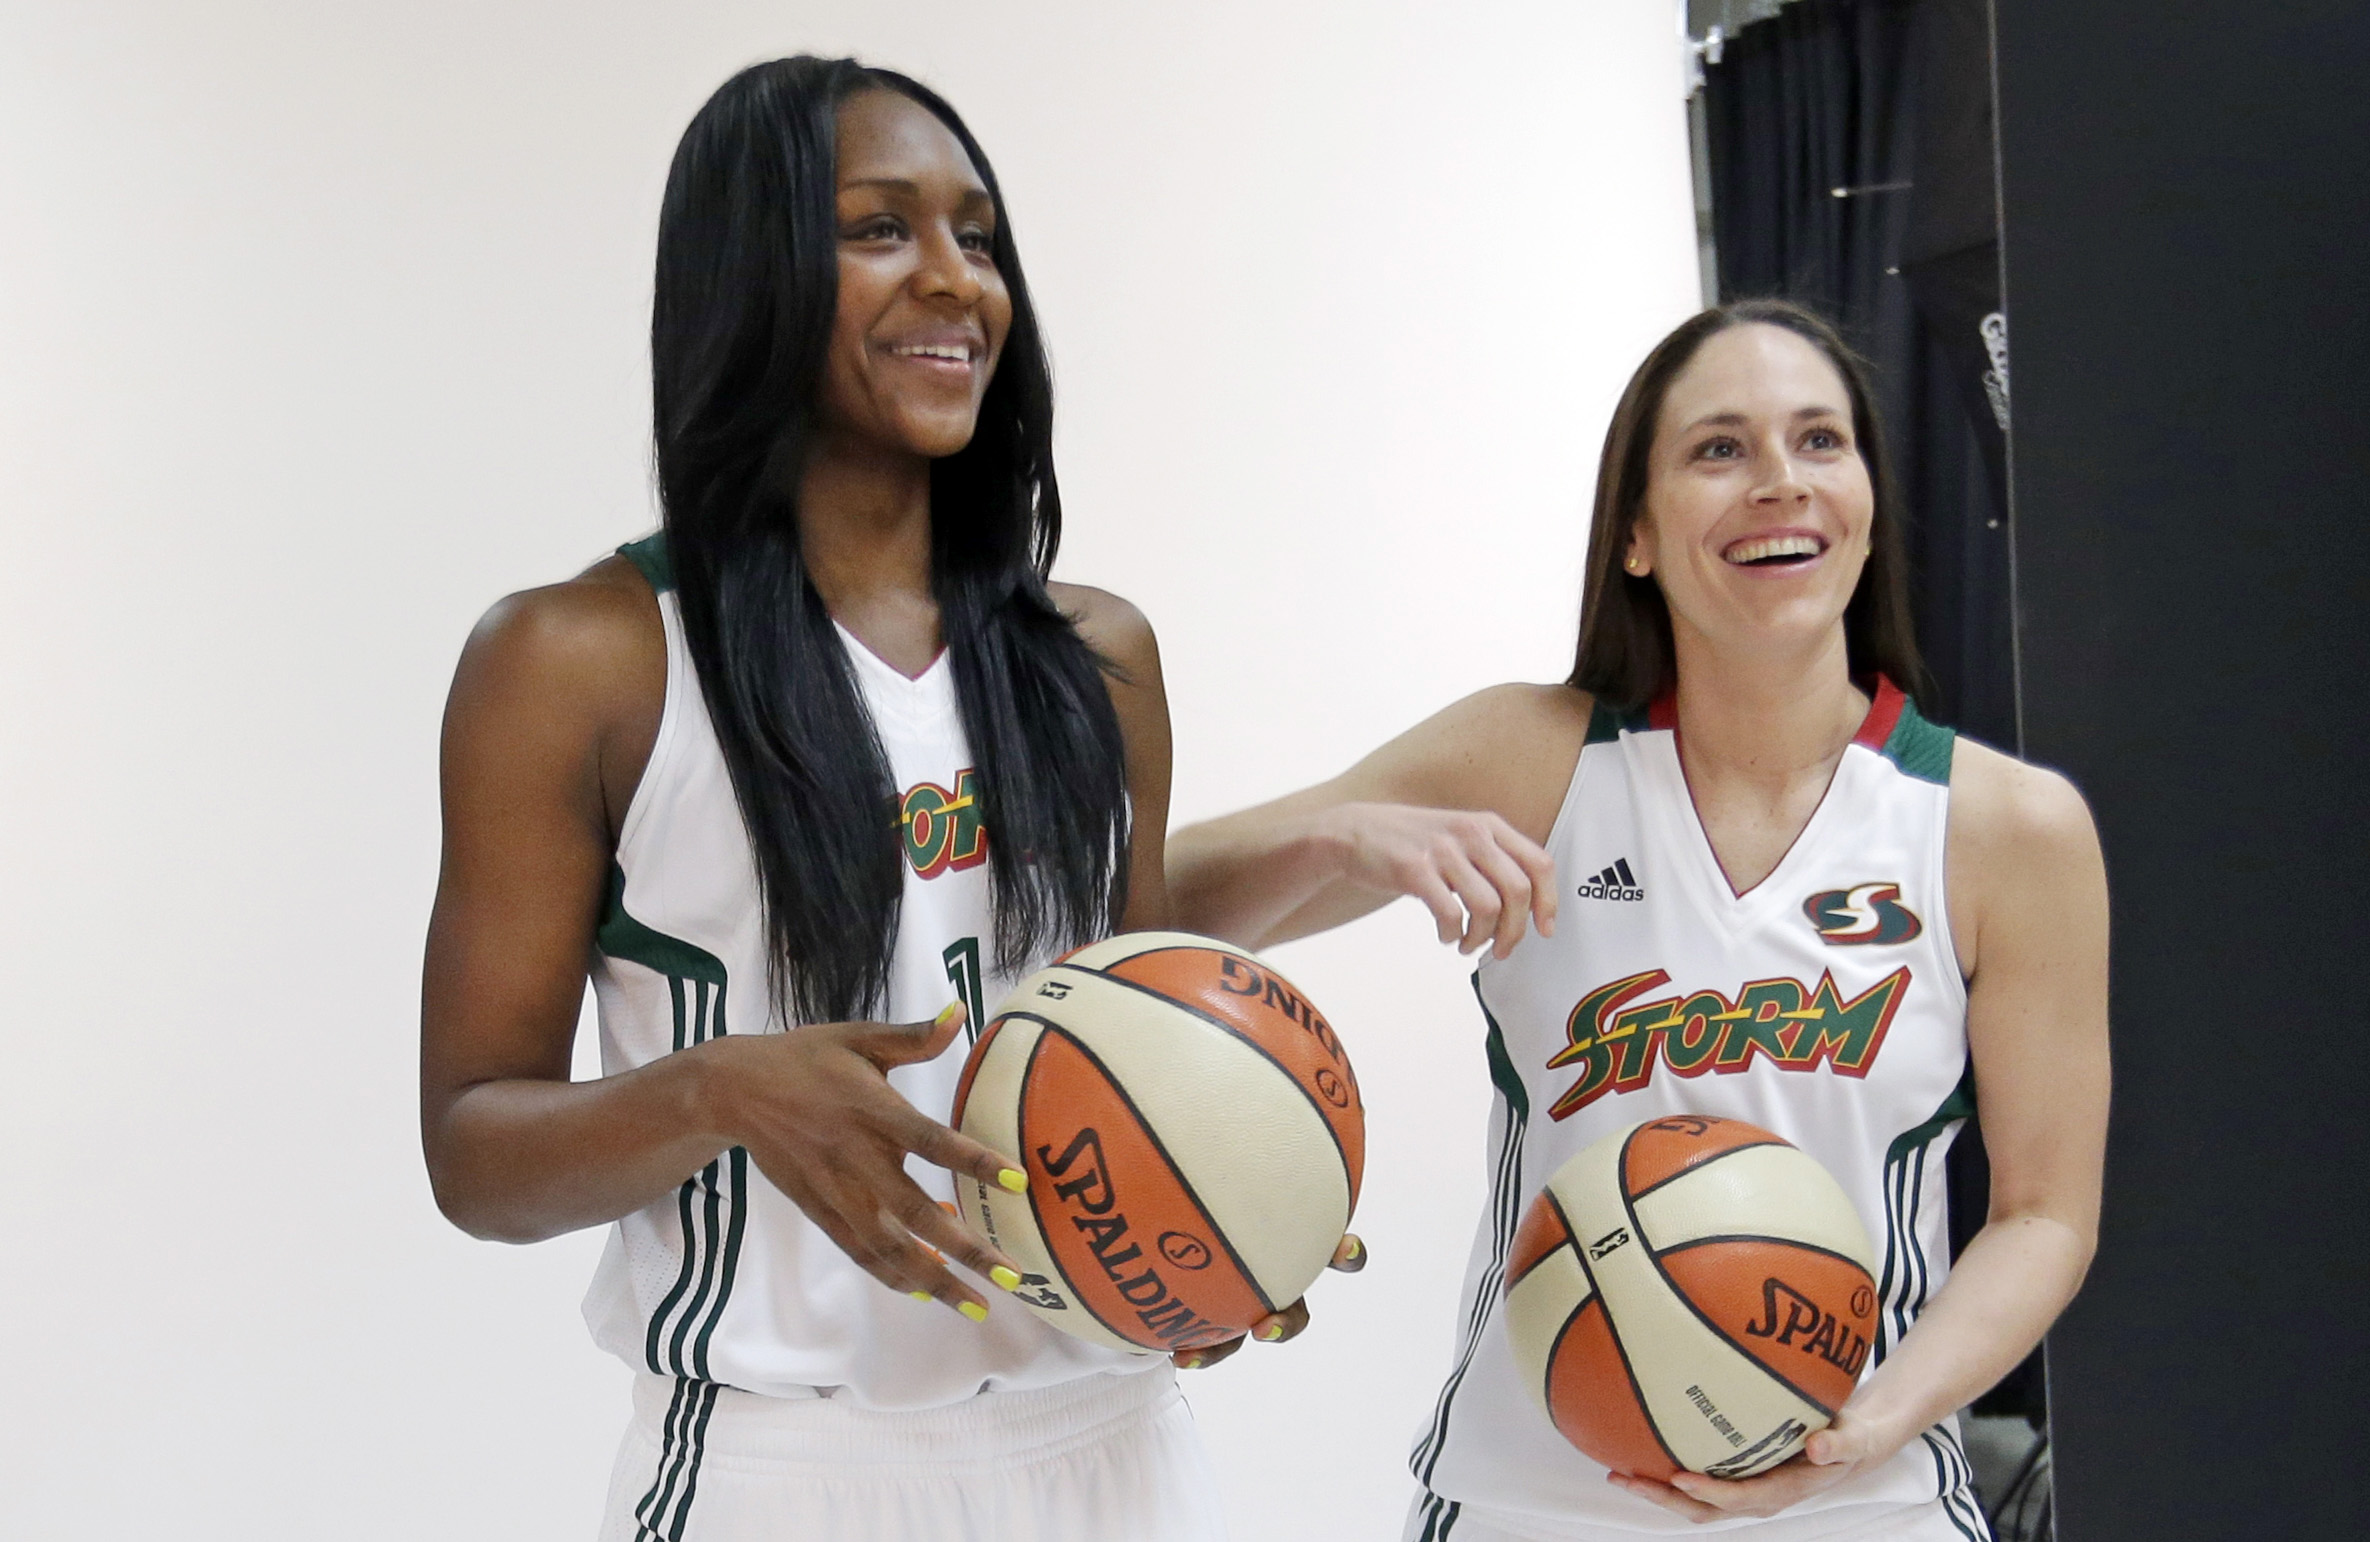 Seattle Storm's Crystal Langhorne, left, and Sue Bird begin a photo session at the team's annual media day Wednesday, May 7, 2014, in Seattle. The team opens against the Los Angeles Sparks on May 16 in Seattle